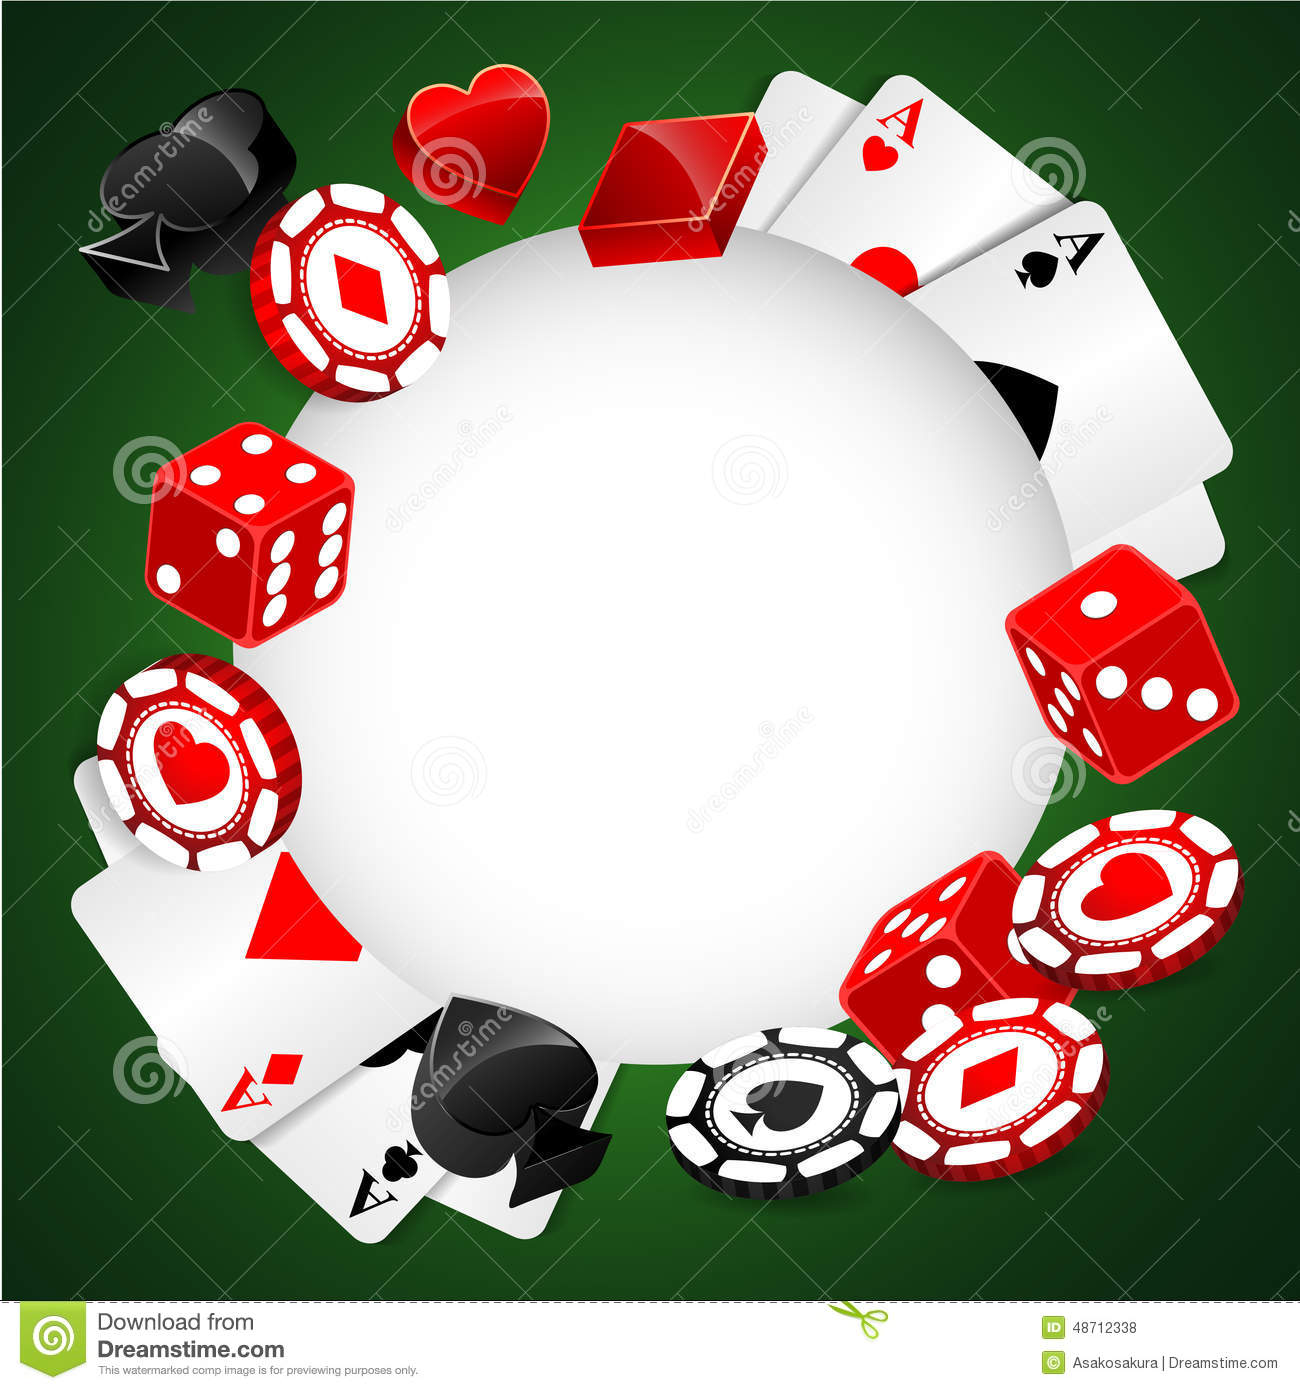 Casino gambling poker roulette